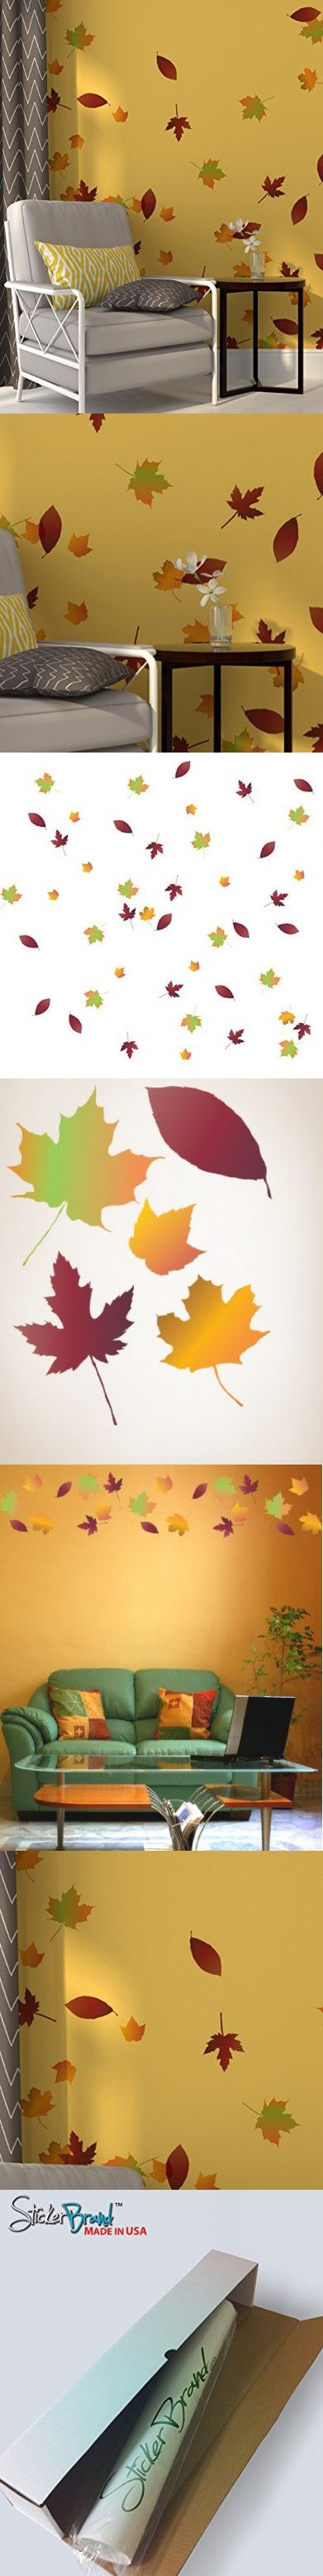 Autumn Leaves Falling Wall Decal Stickers - Fall Colors Decoration. Easy to Apply & Removable. Include 60 leaves. #AC124 #autumnleavesfalling